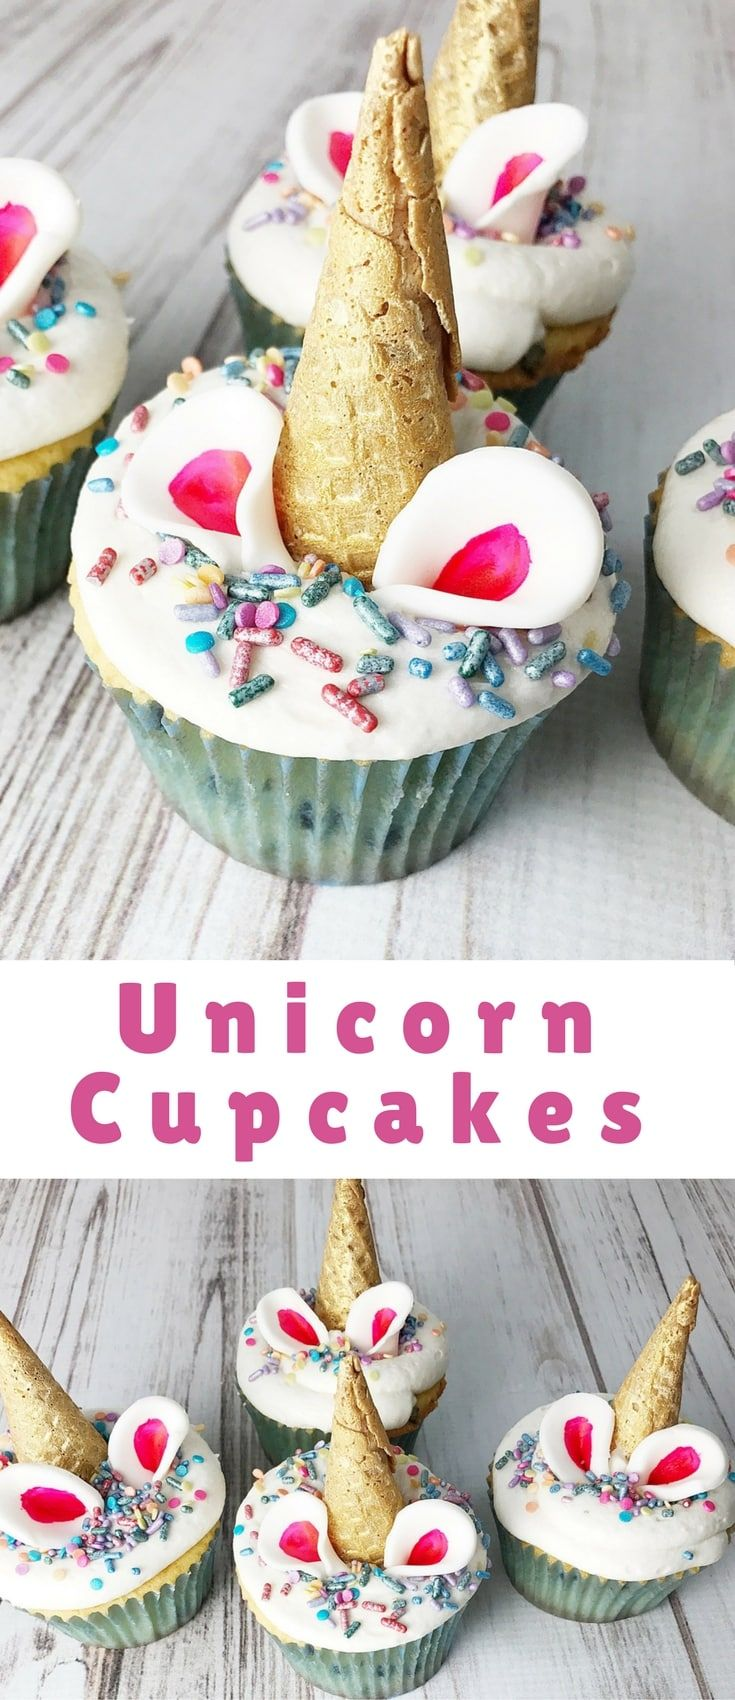 Cupcakes decorated as unicorns! I am always a day late and a dollar short when it comes to trends, so hopefully you aren't too unicorned out yet.